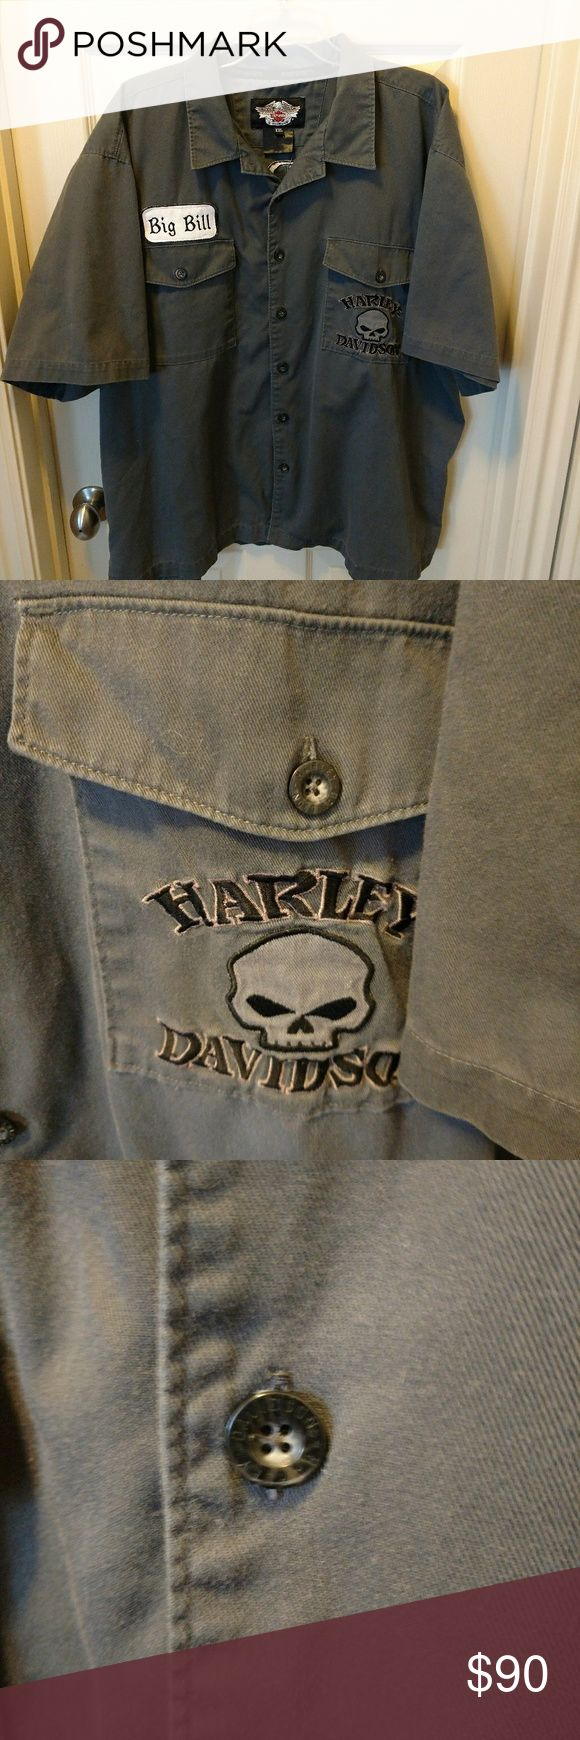 """HARLEY DAVIDSON WILLIE G SKULL """"BIG BILL"""" SHIRT HARLEY DAVIDSON MEN'S SHORT SLEEVE BUTTON UP WILLIE G SKULL EMBROIDERY SHIRT WITH BIG BILL NAME PATCH  SIZE XXL 2XL ARMPIT TO ARMPIT: 28"""" BASE OF COLLAR TO HEM: 28.5""""  VERY GOOD CONDITION WITH NO RIPS TEARS OR STAINS  #631 Harley-Davidson Shirts Casual Button Down Shirts"""